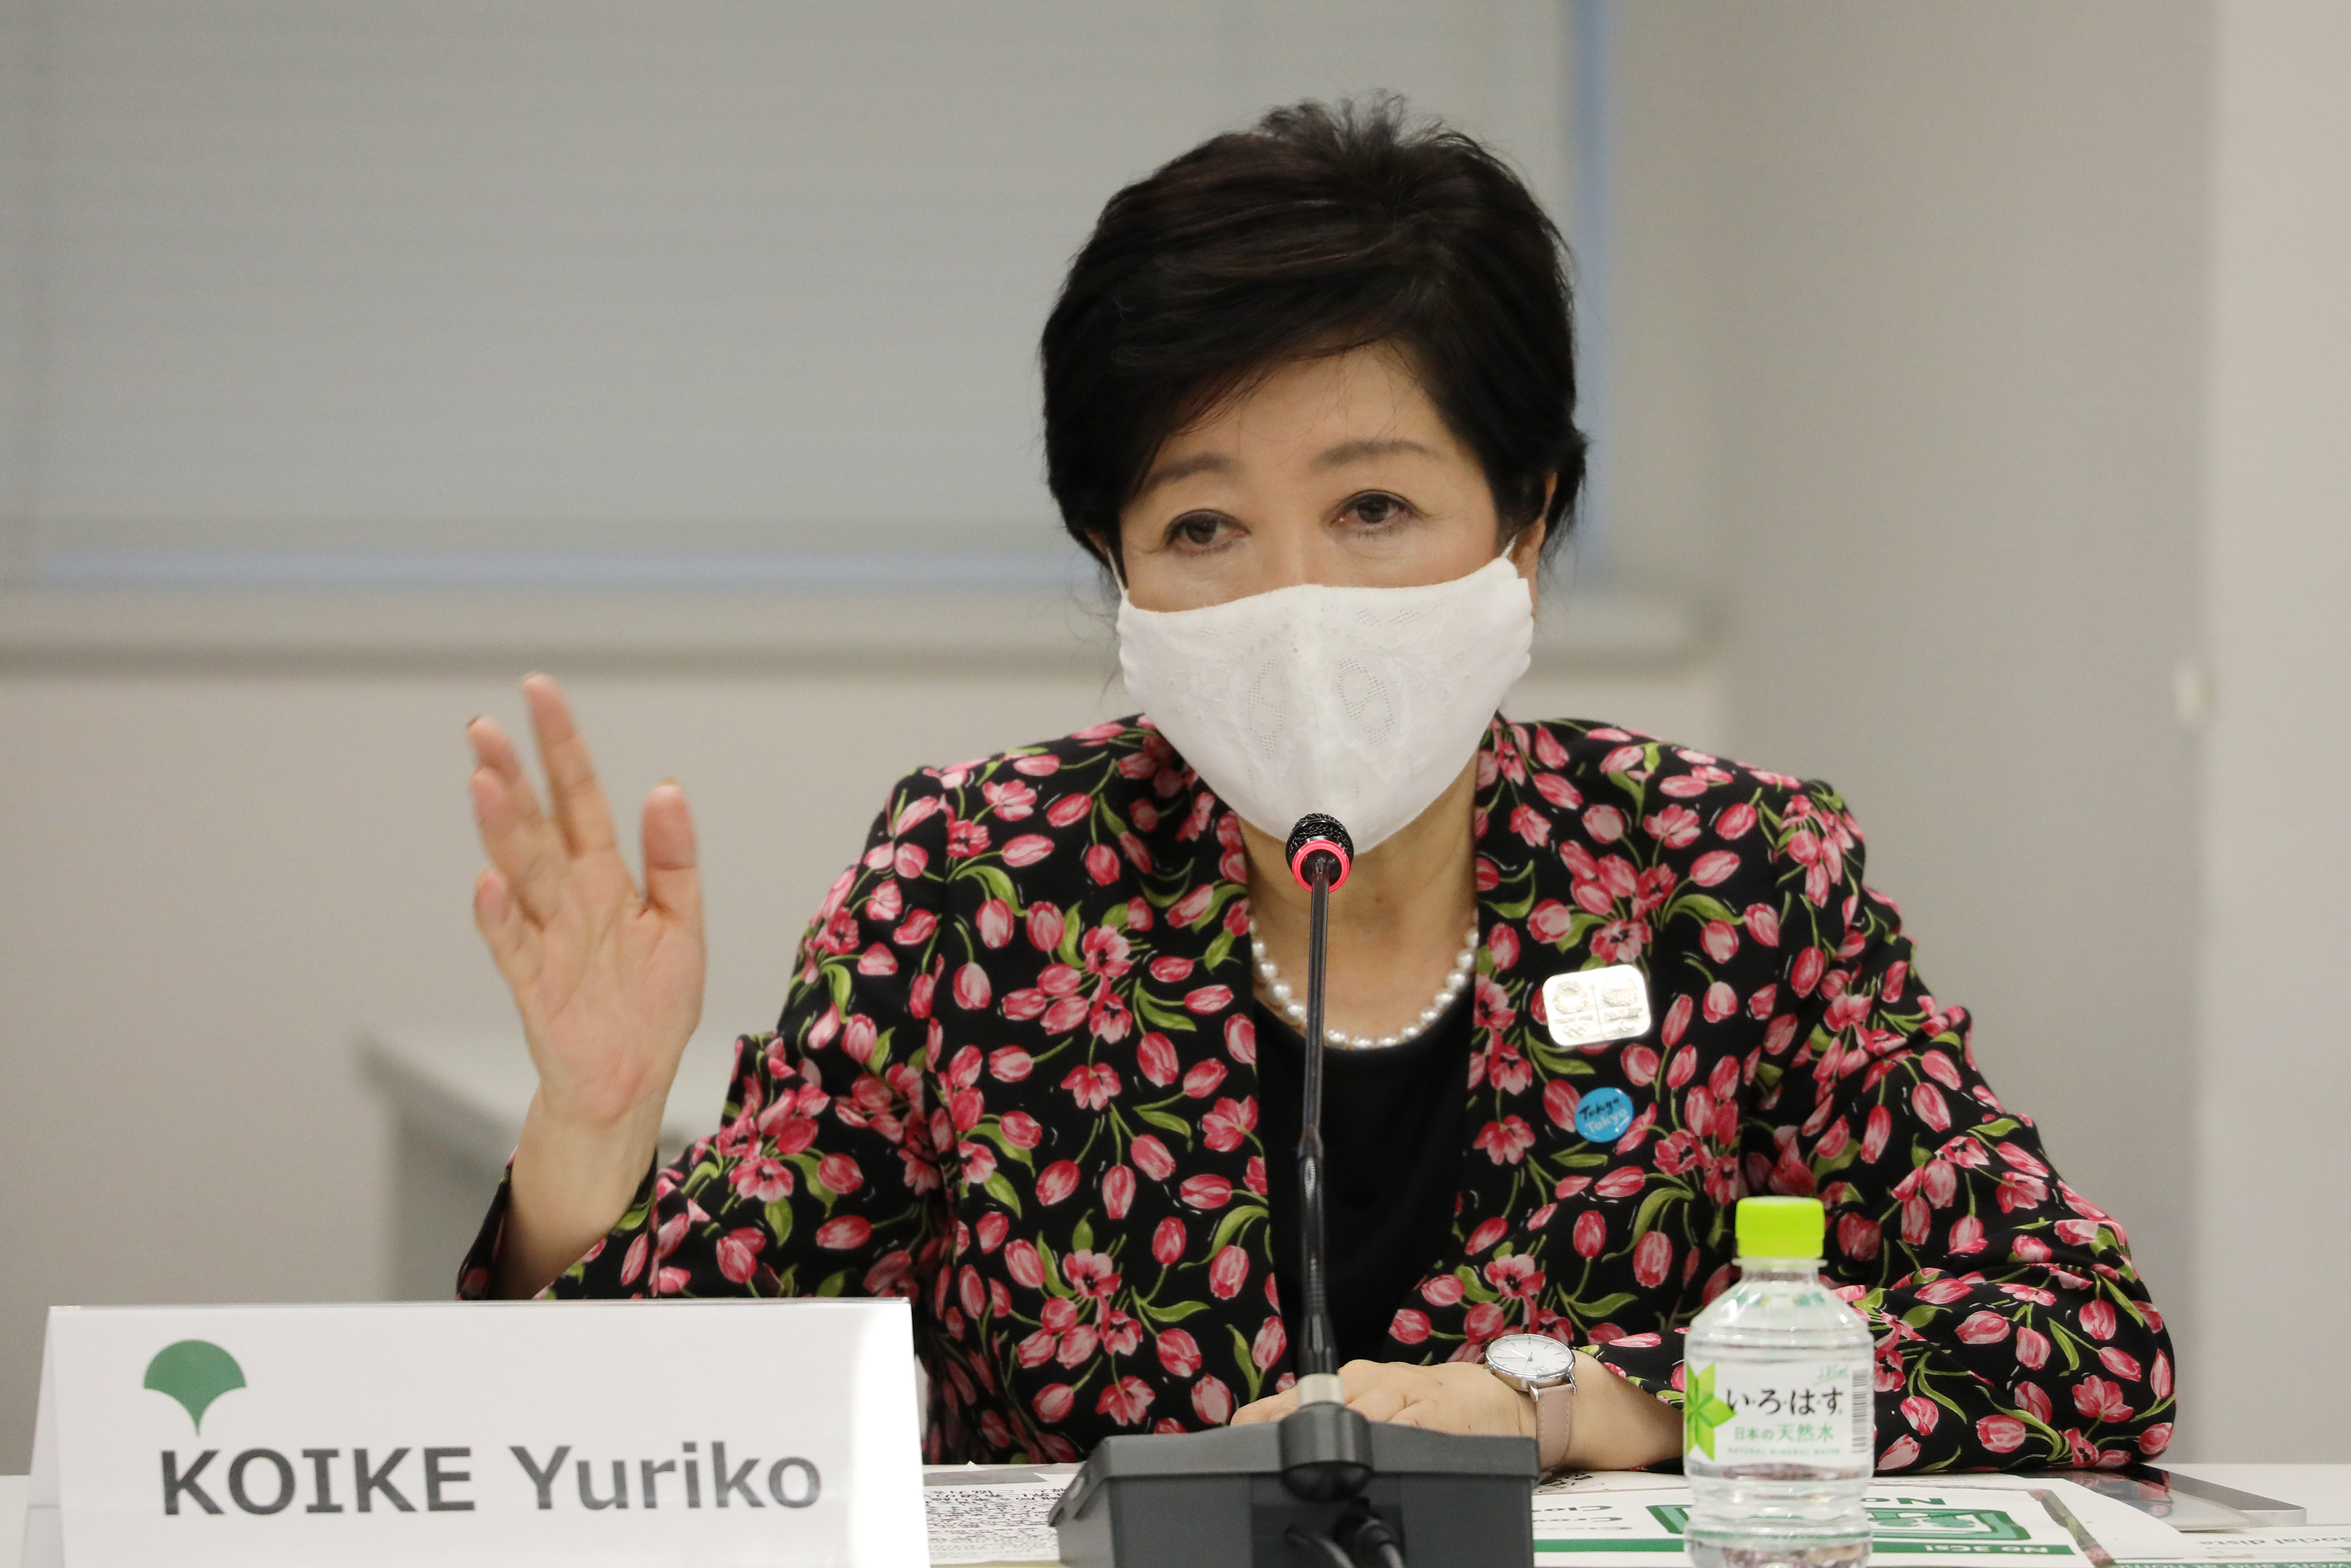 Tokyo governor Yuriko Koike speaks during a meeting with the International Olympic Committee (IOC) Coordination Commission for the Tokyo 2020 Olympic Games in Tokyo in September.